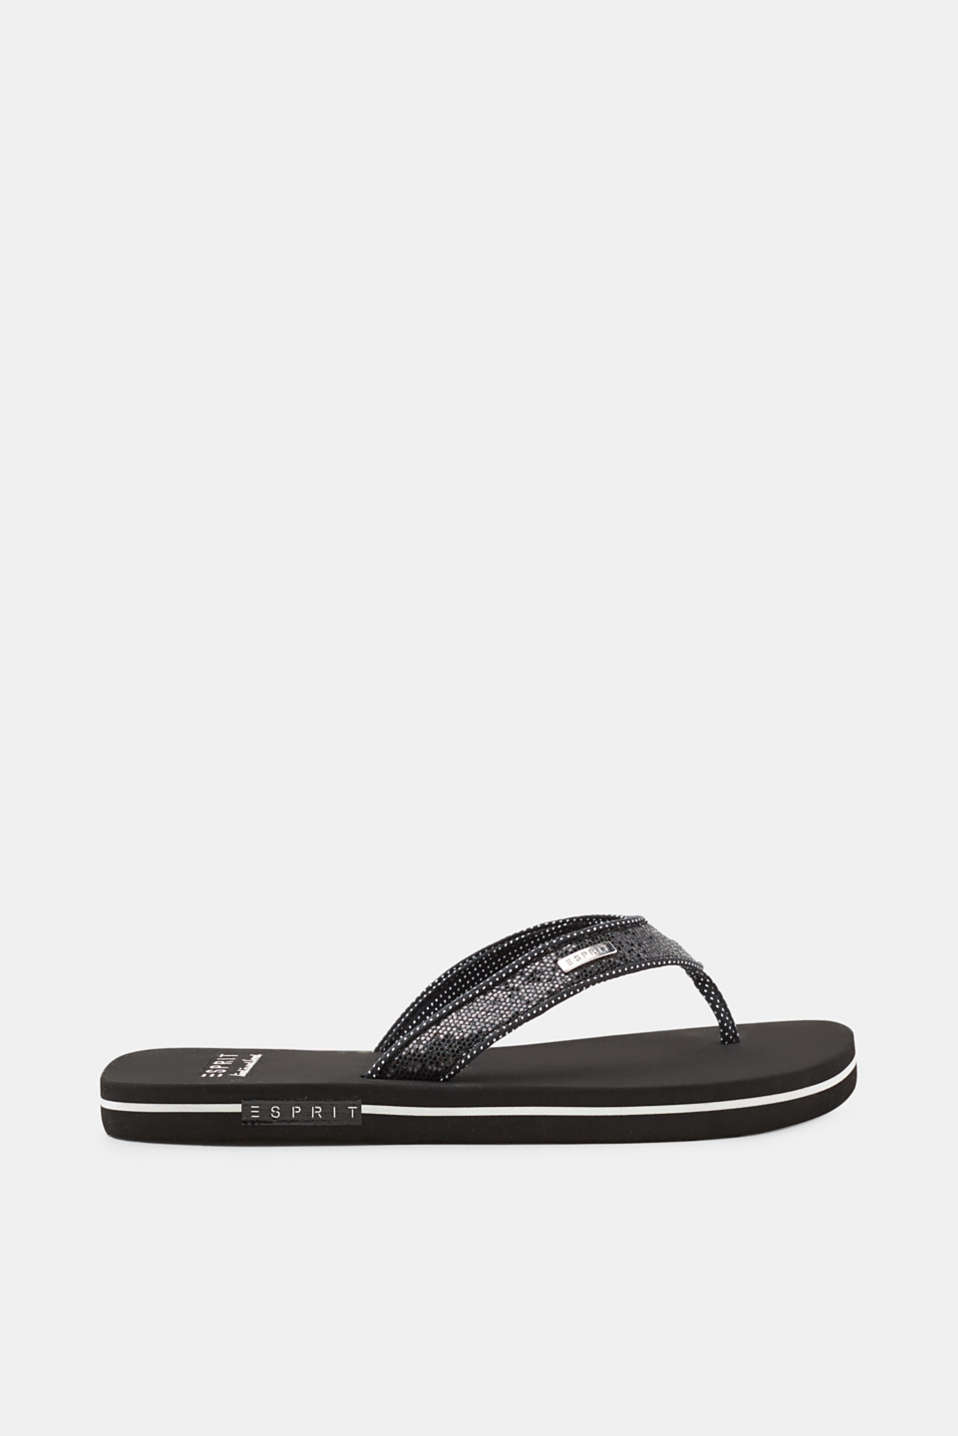 Esprit - Toe-post sandals with shimmering straps